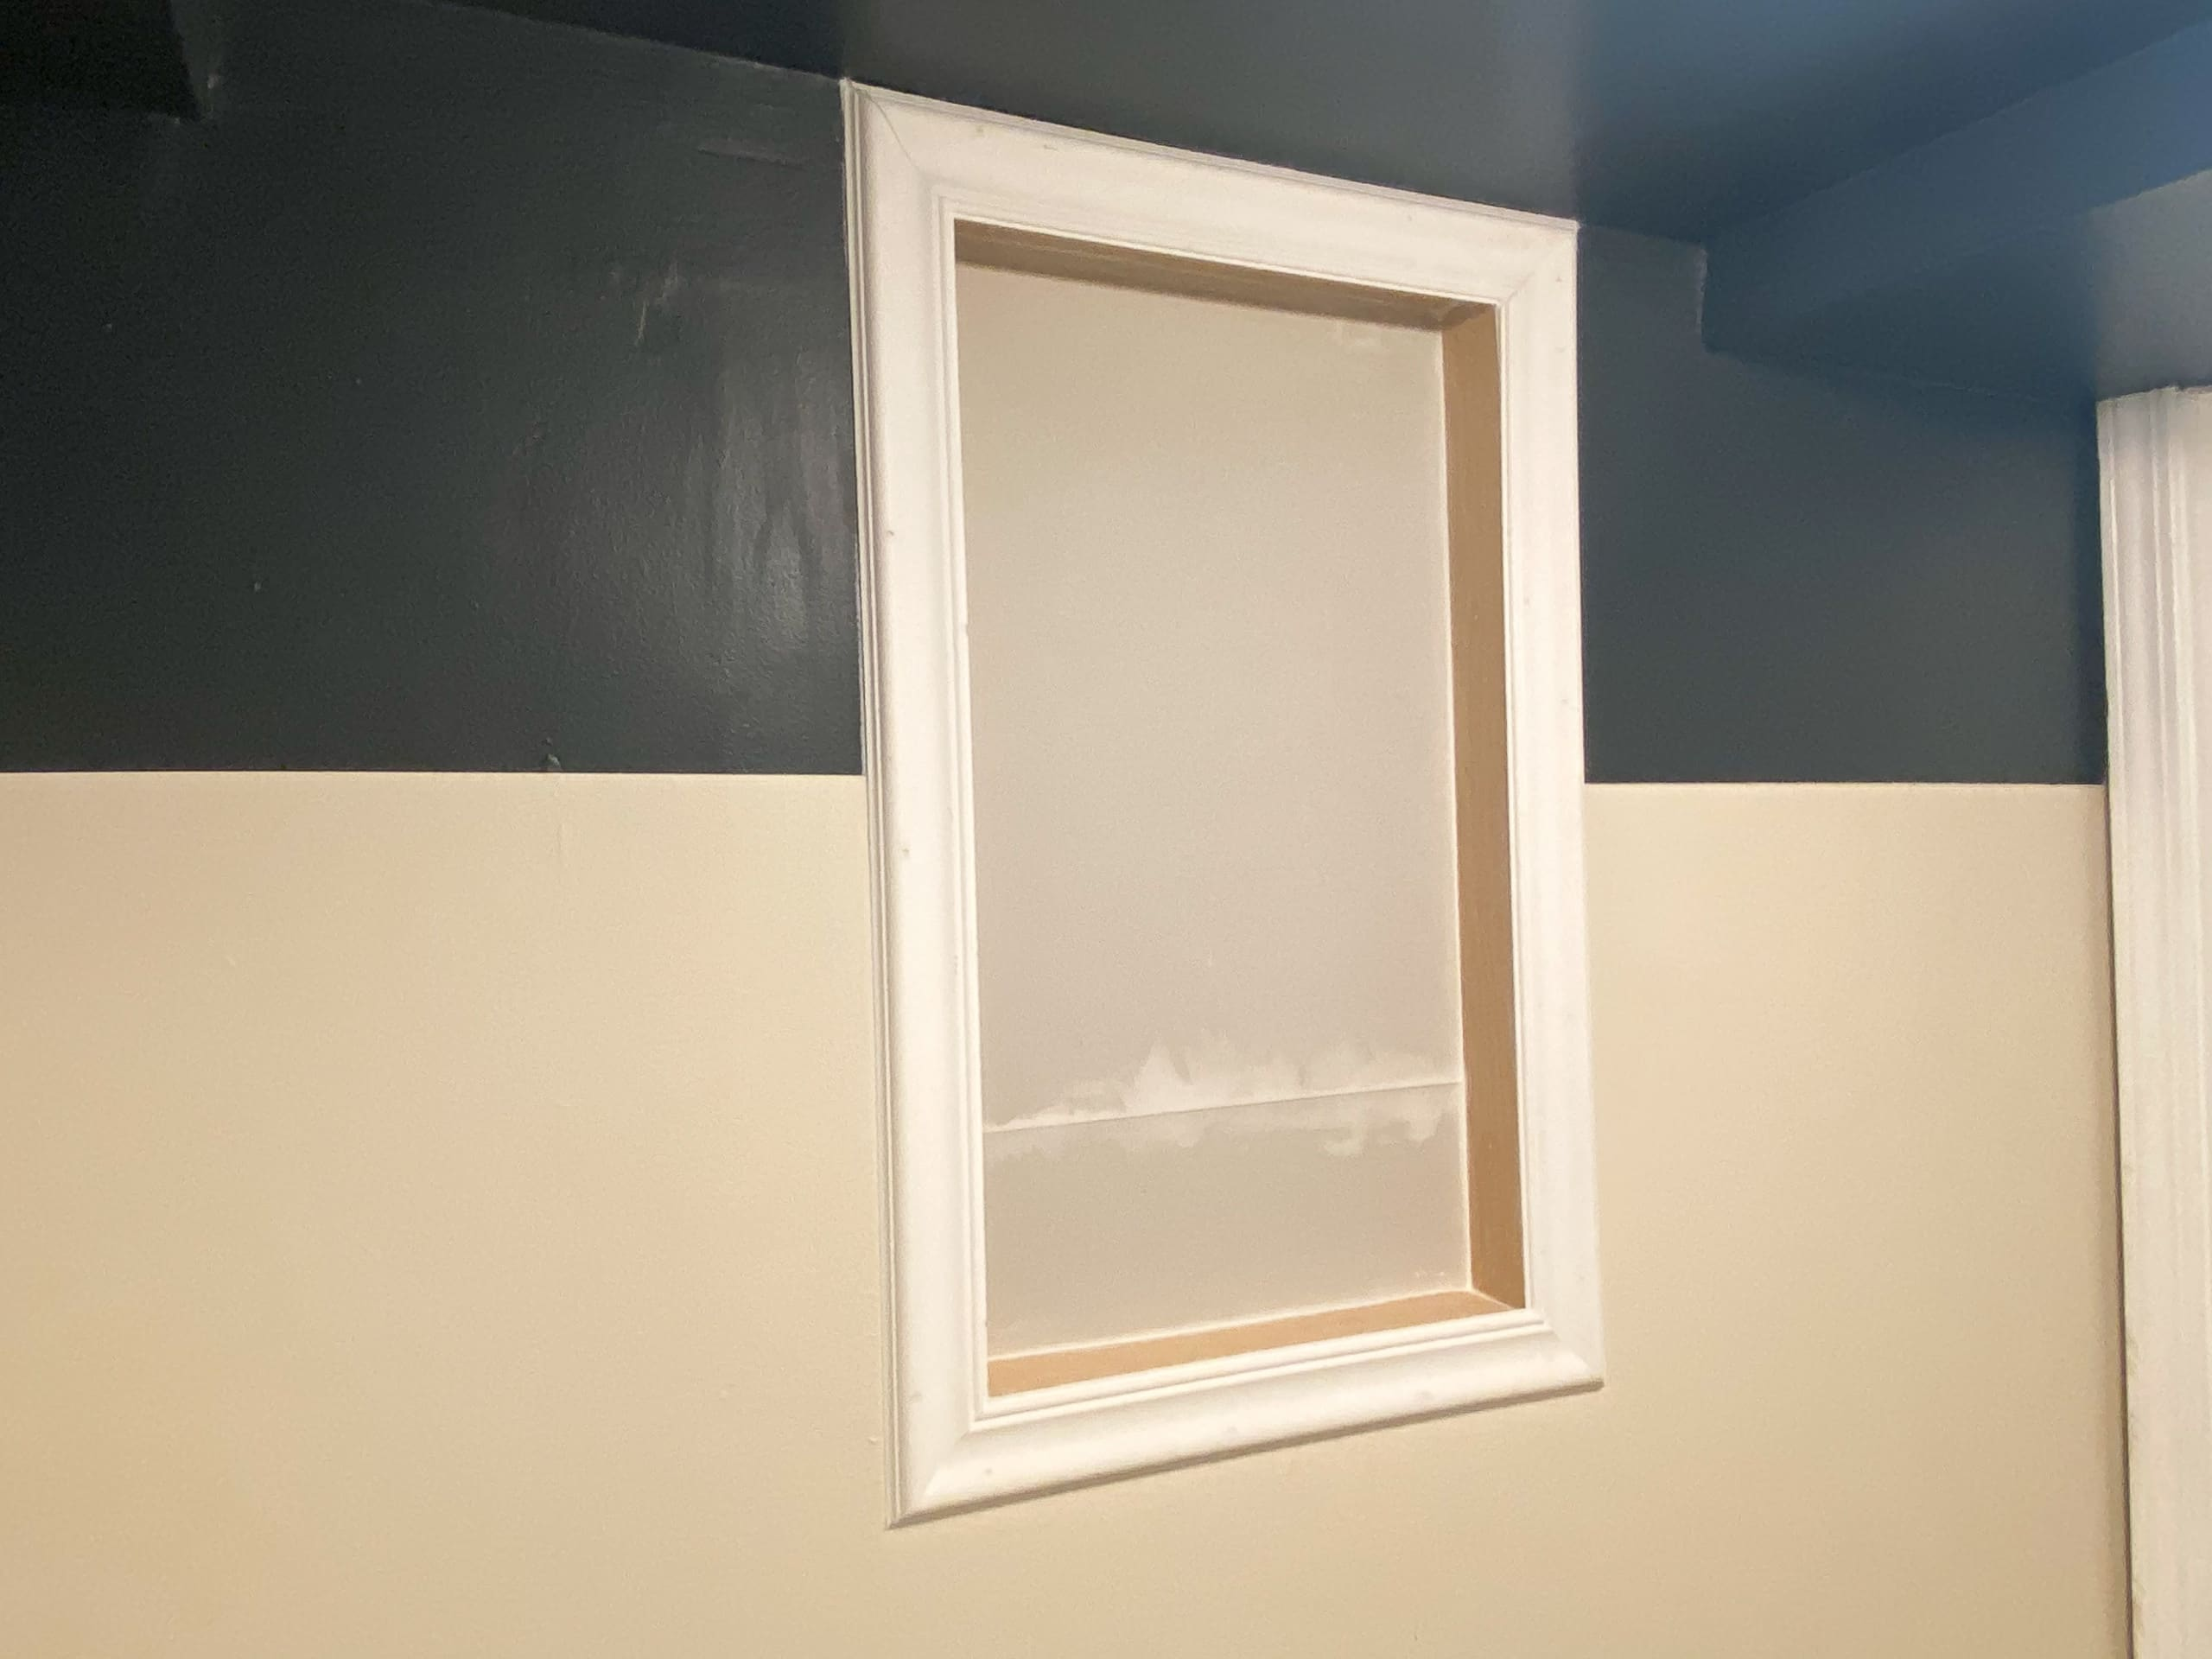 Adding trim to our basement window shelves